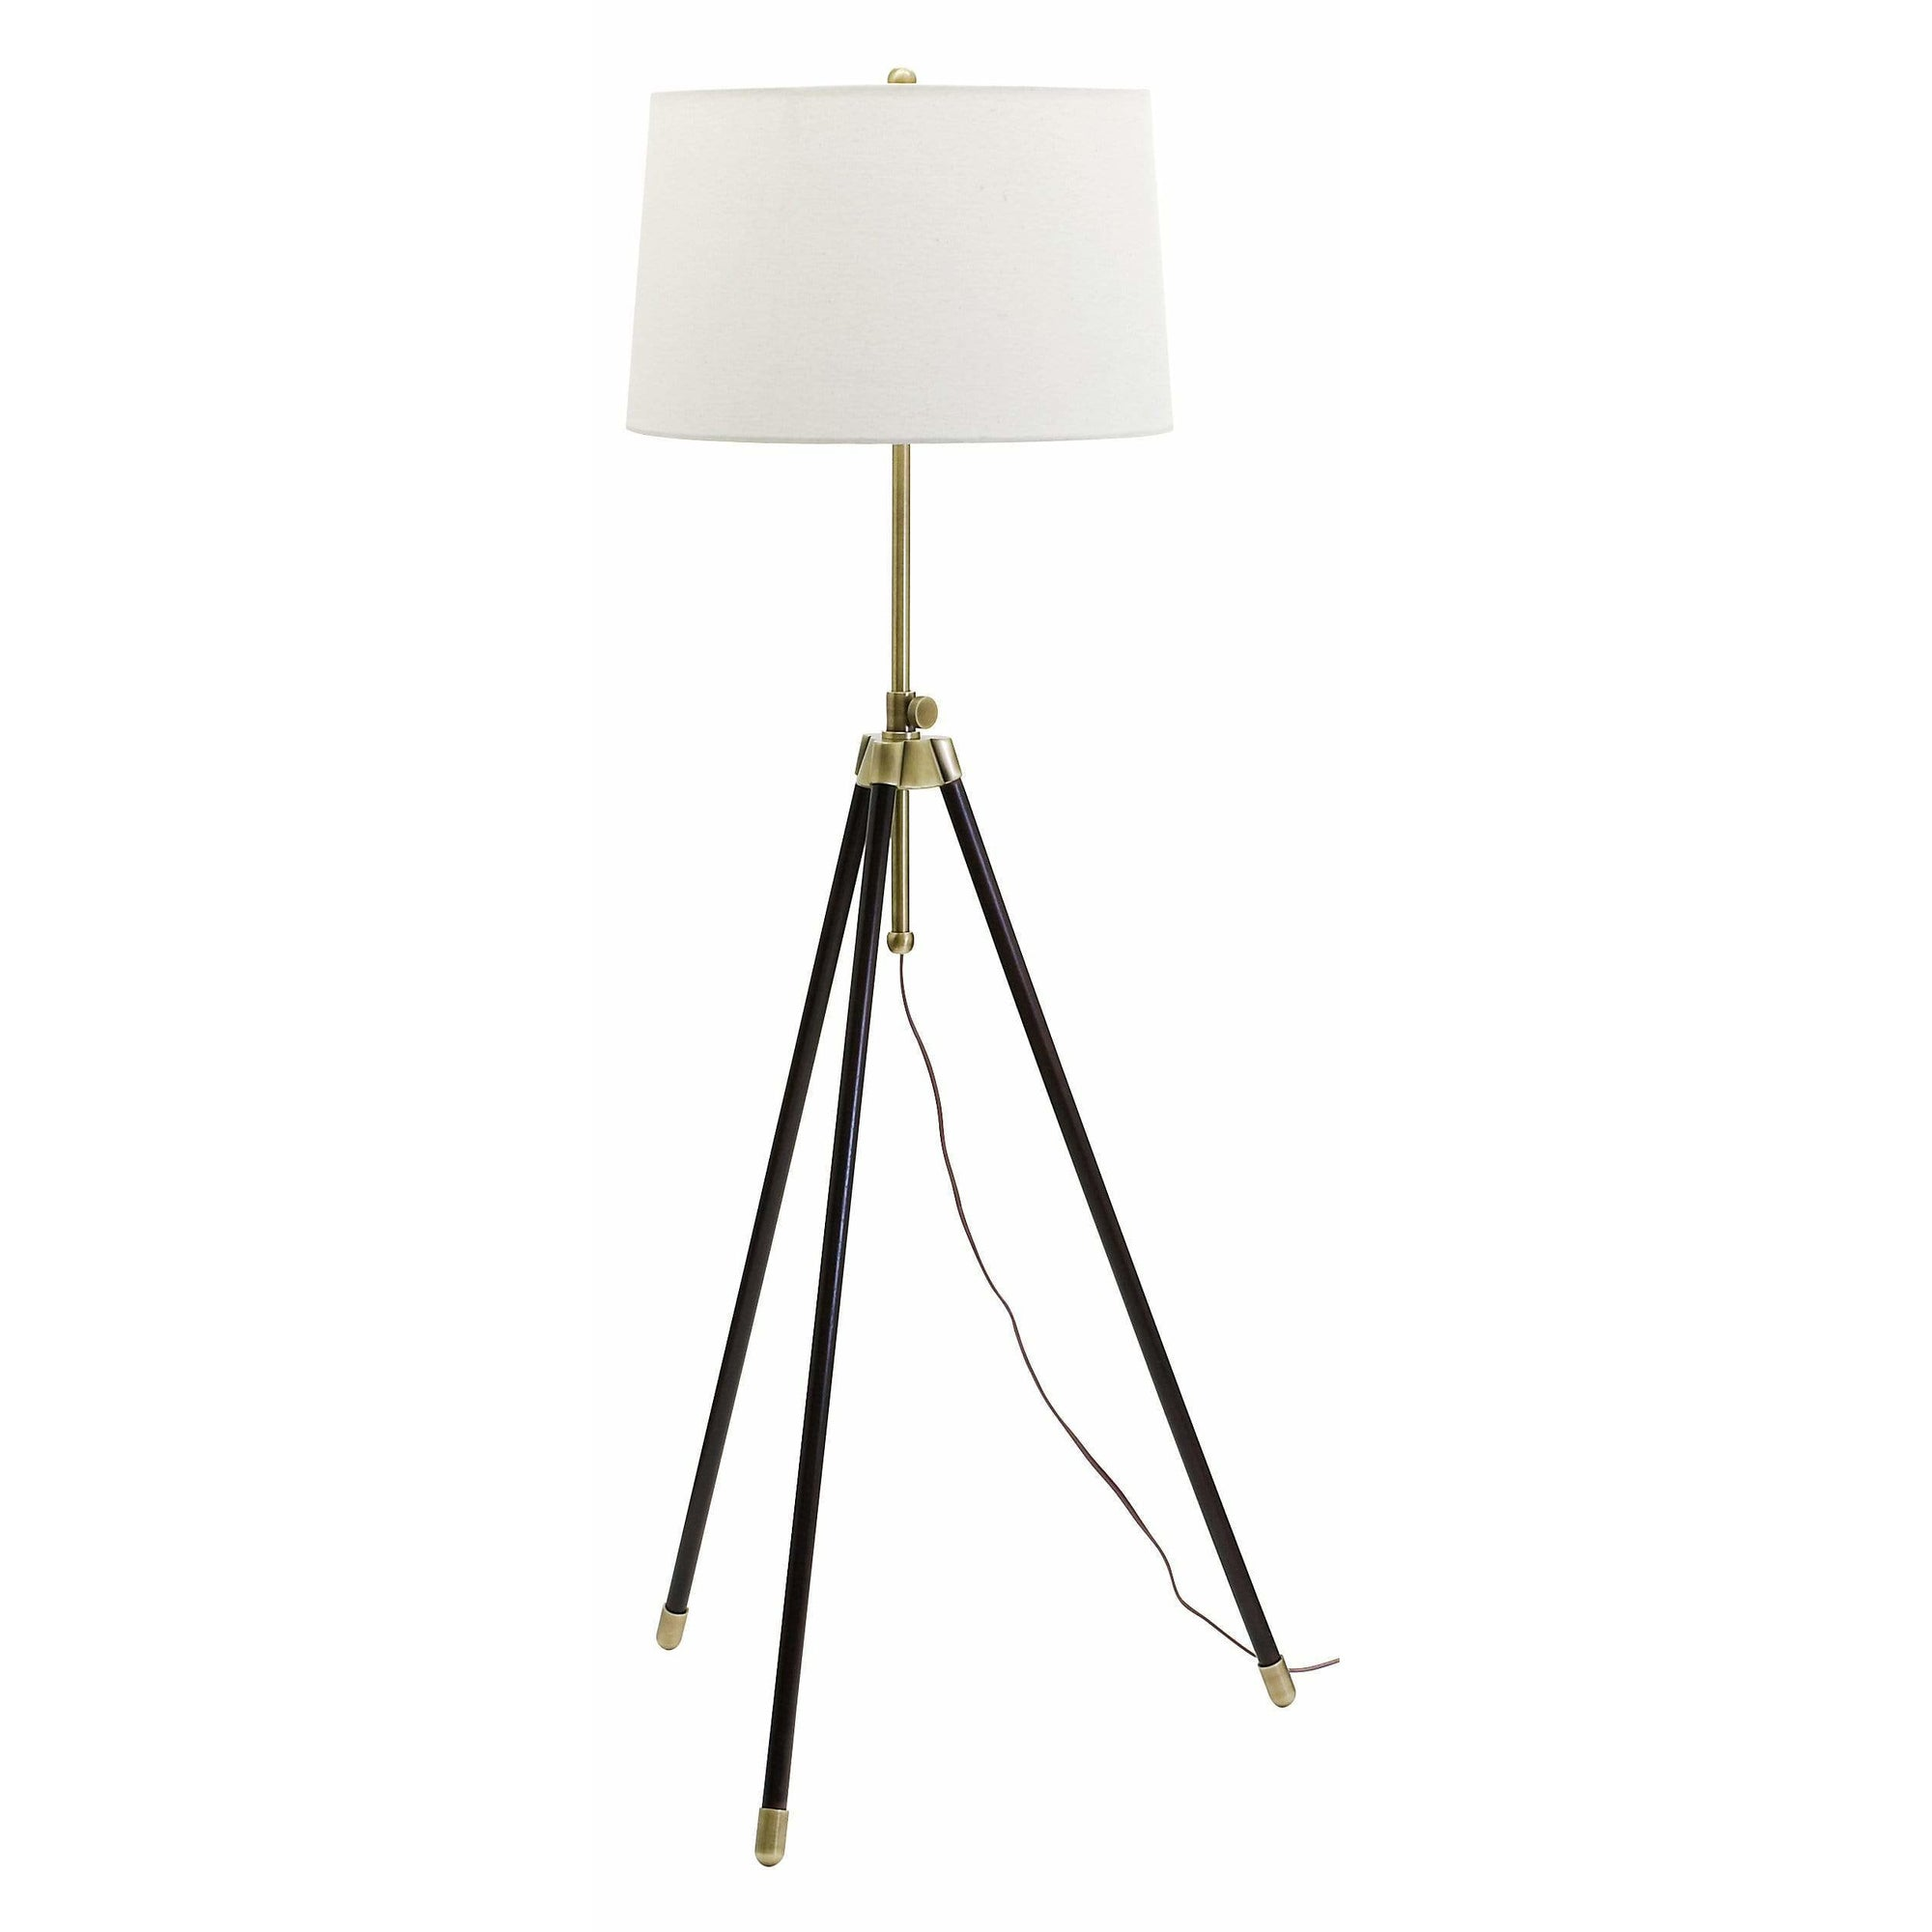 House Of Troy Floor Lamps Tripod Adjustable Floor Lamp by House Of Troy TR201-AB